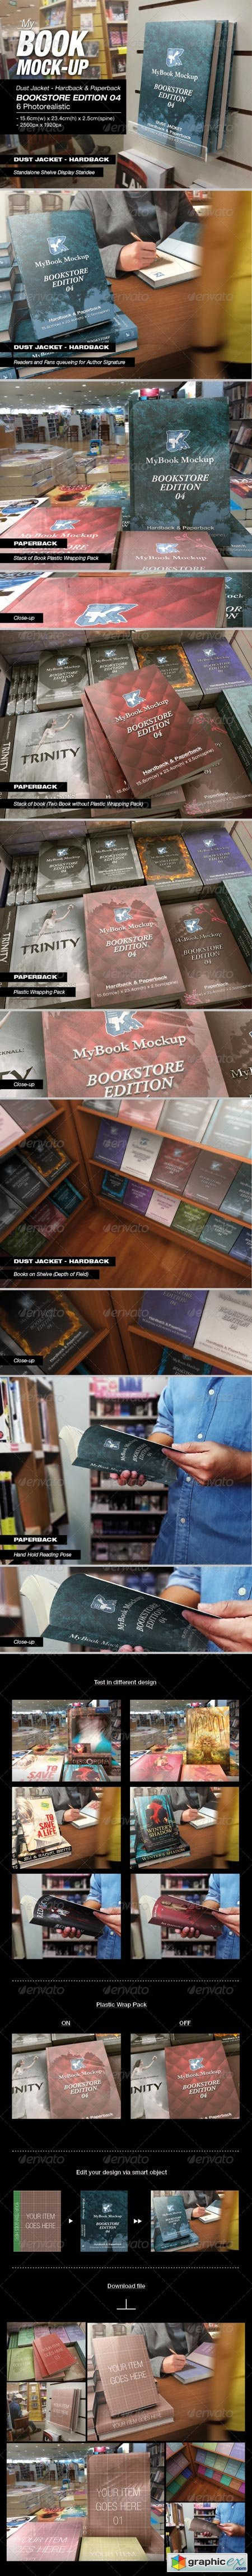 MyBook Mock-up - Bookstore Edition 04 7731739